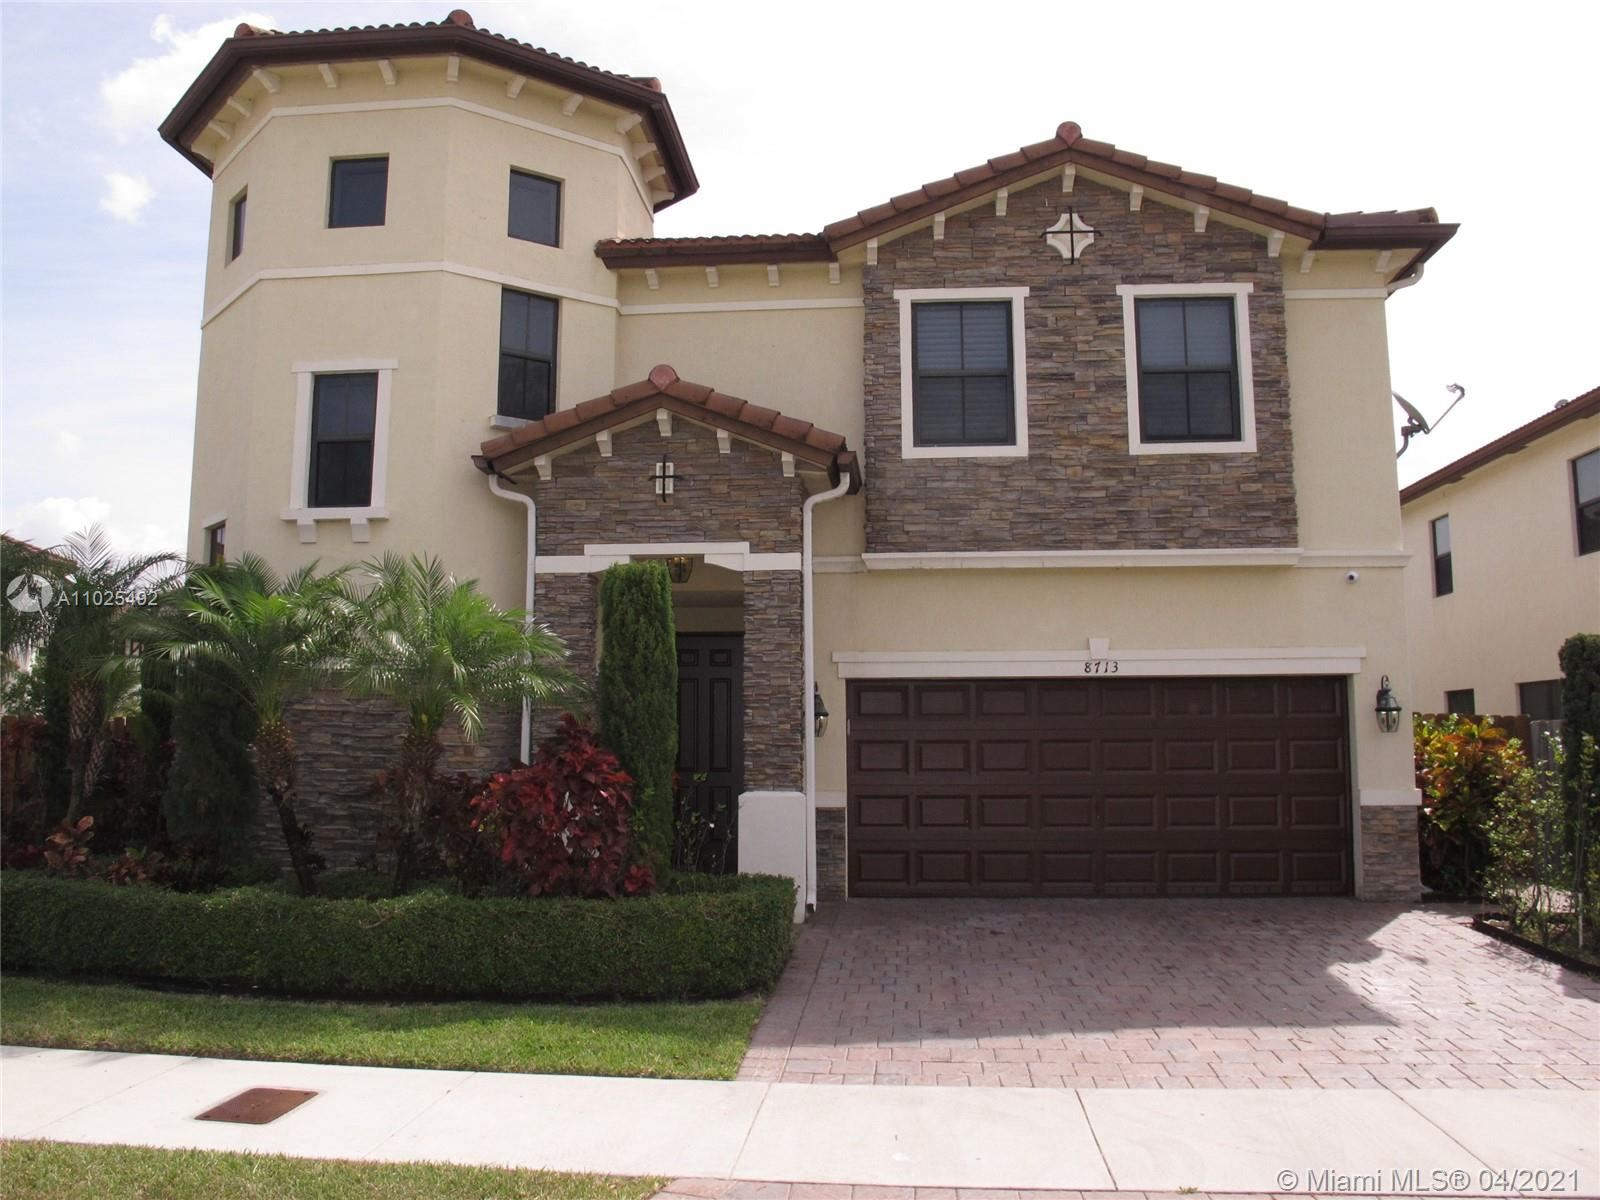 8713 NW 99th Ave, Doral, FL 33178 - #: A11025492